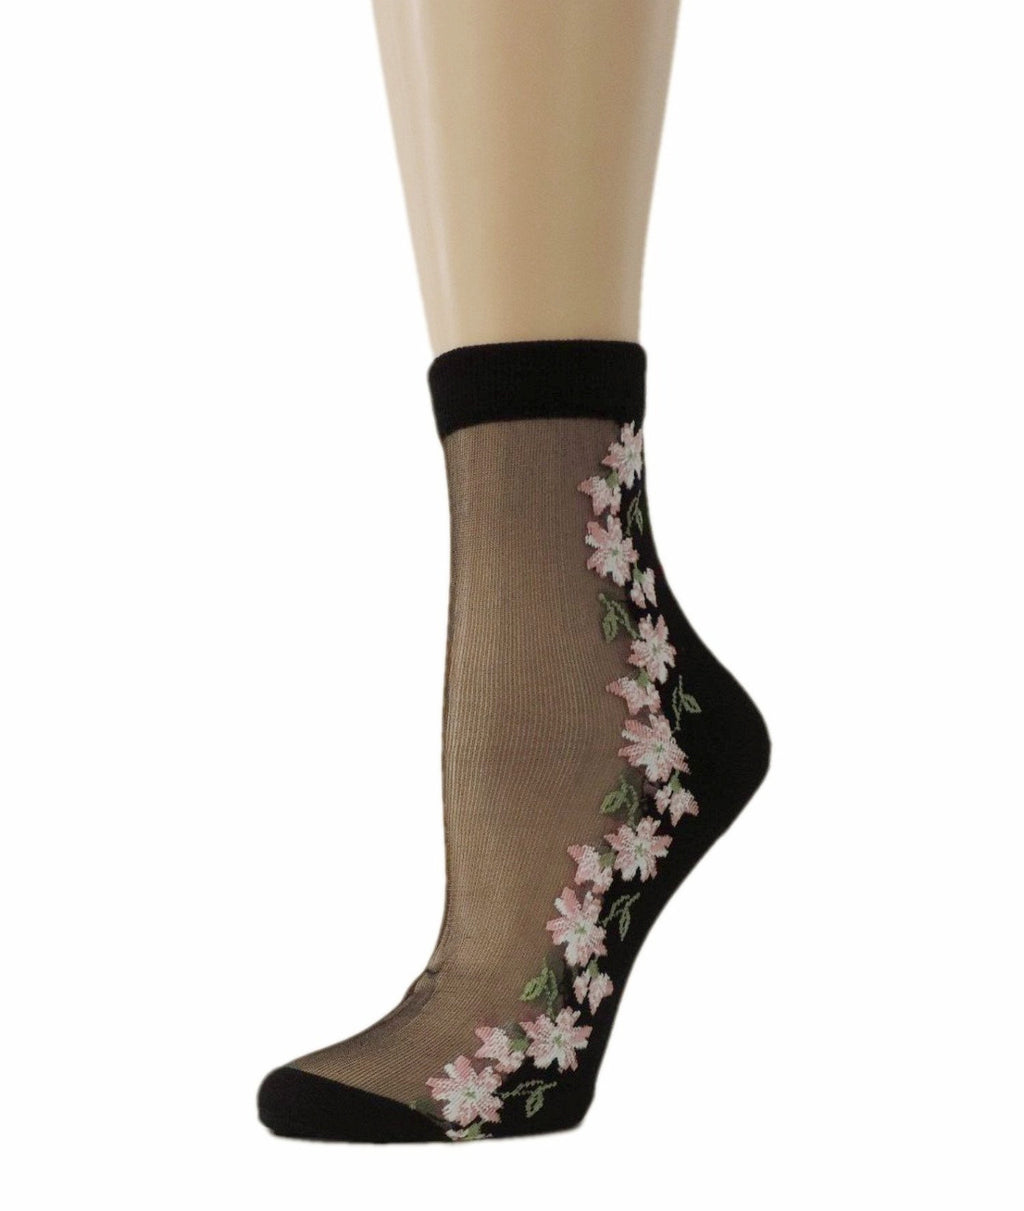 Happy Flowers Sheer Socks - Global Trendz Fashion®